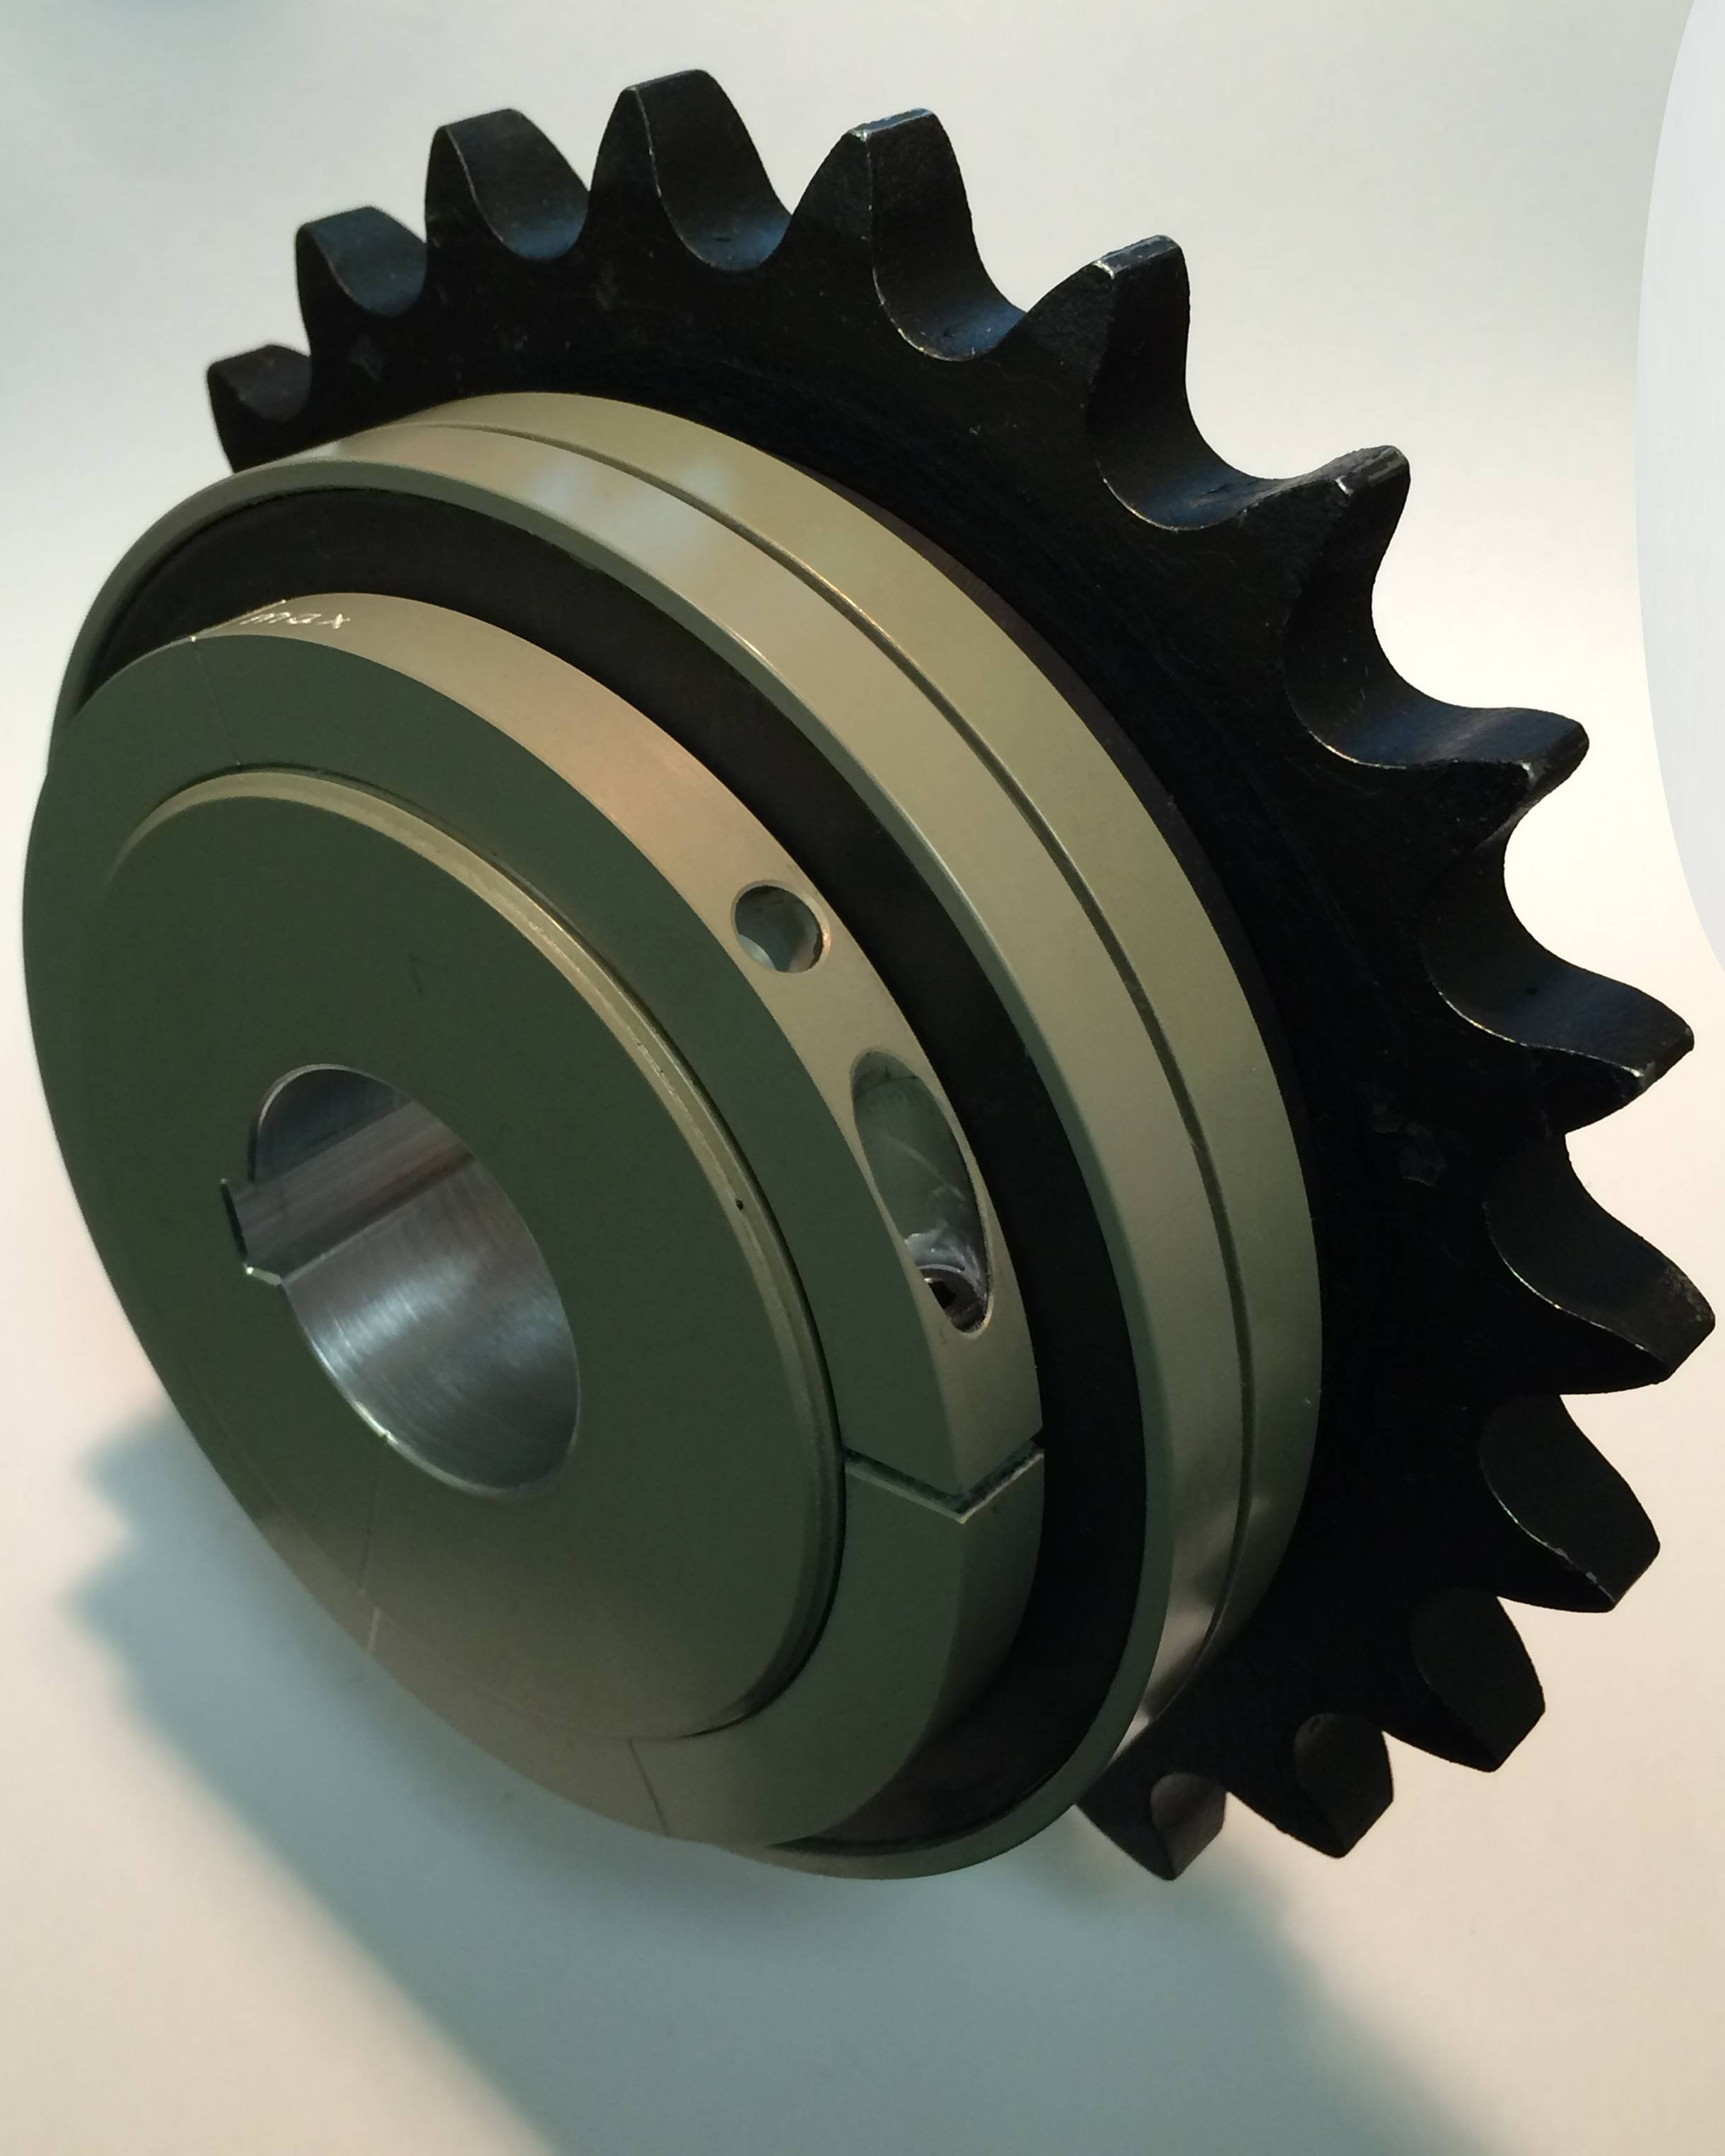 sprocket mounted to torque limiter